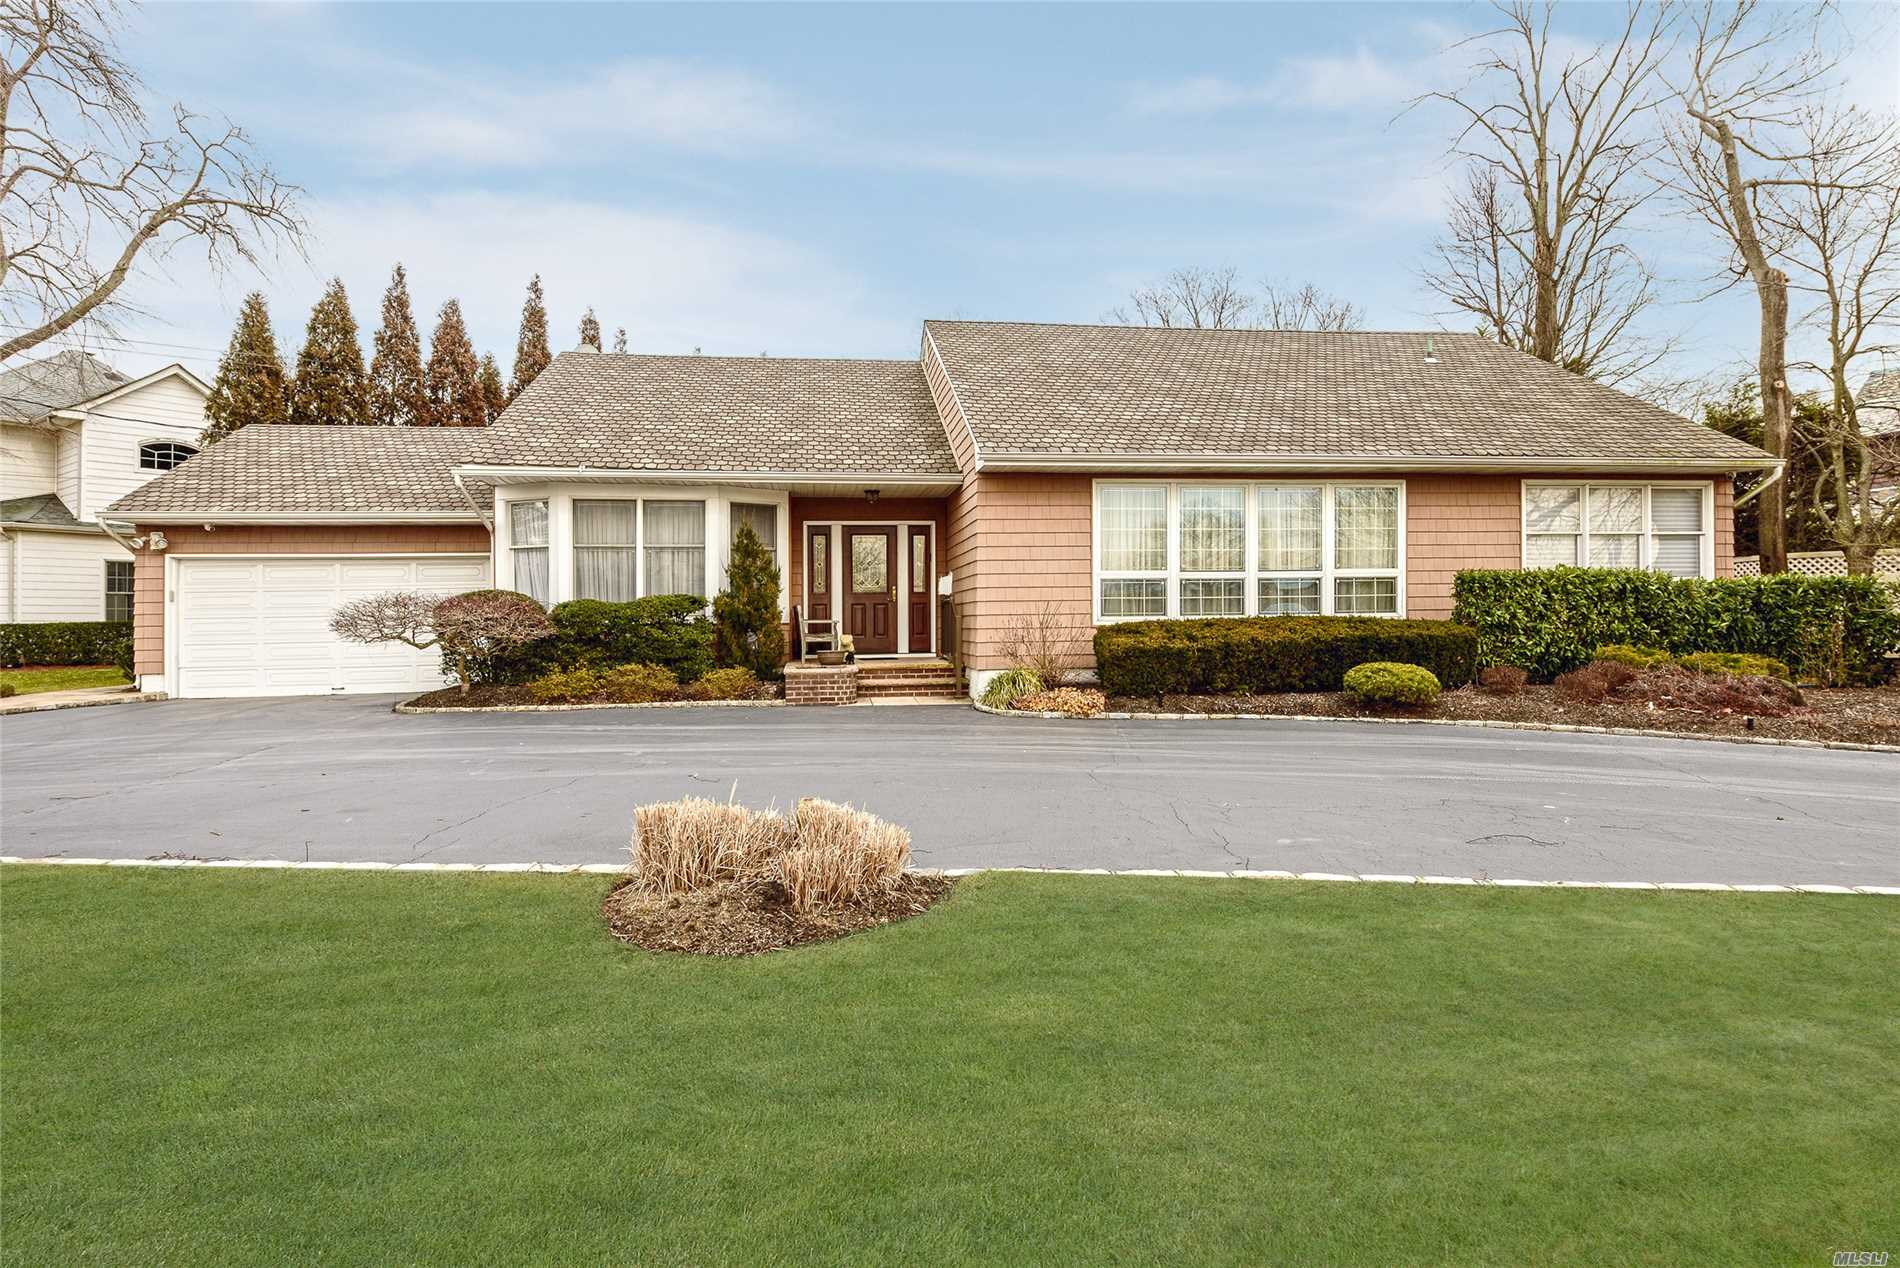 255 Lindenmere Dr - Merrick, New York